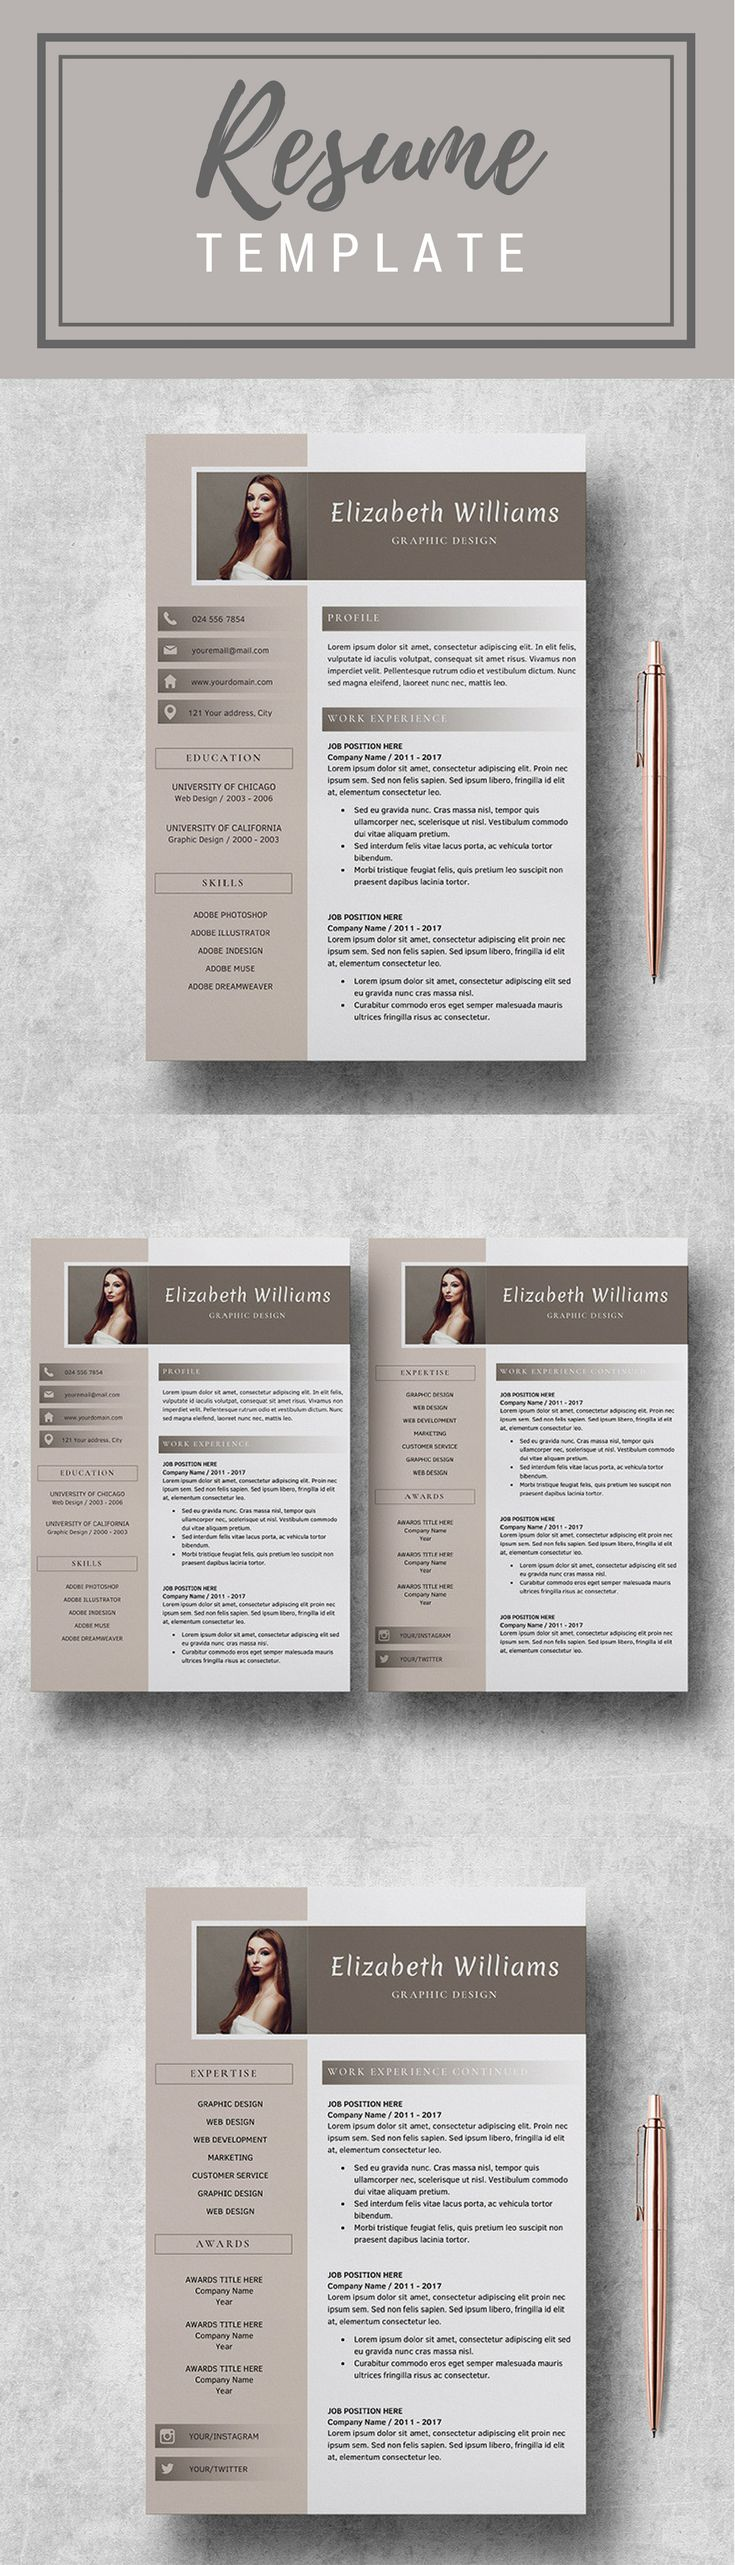 Resume Template CV Template for MS